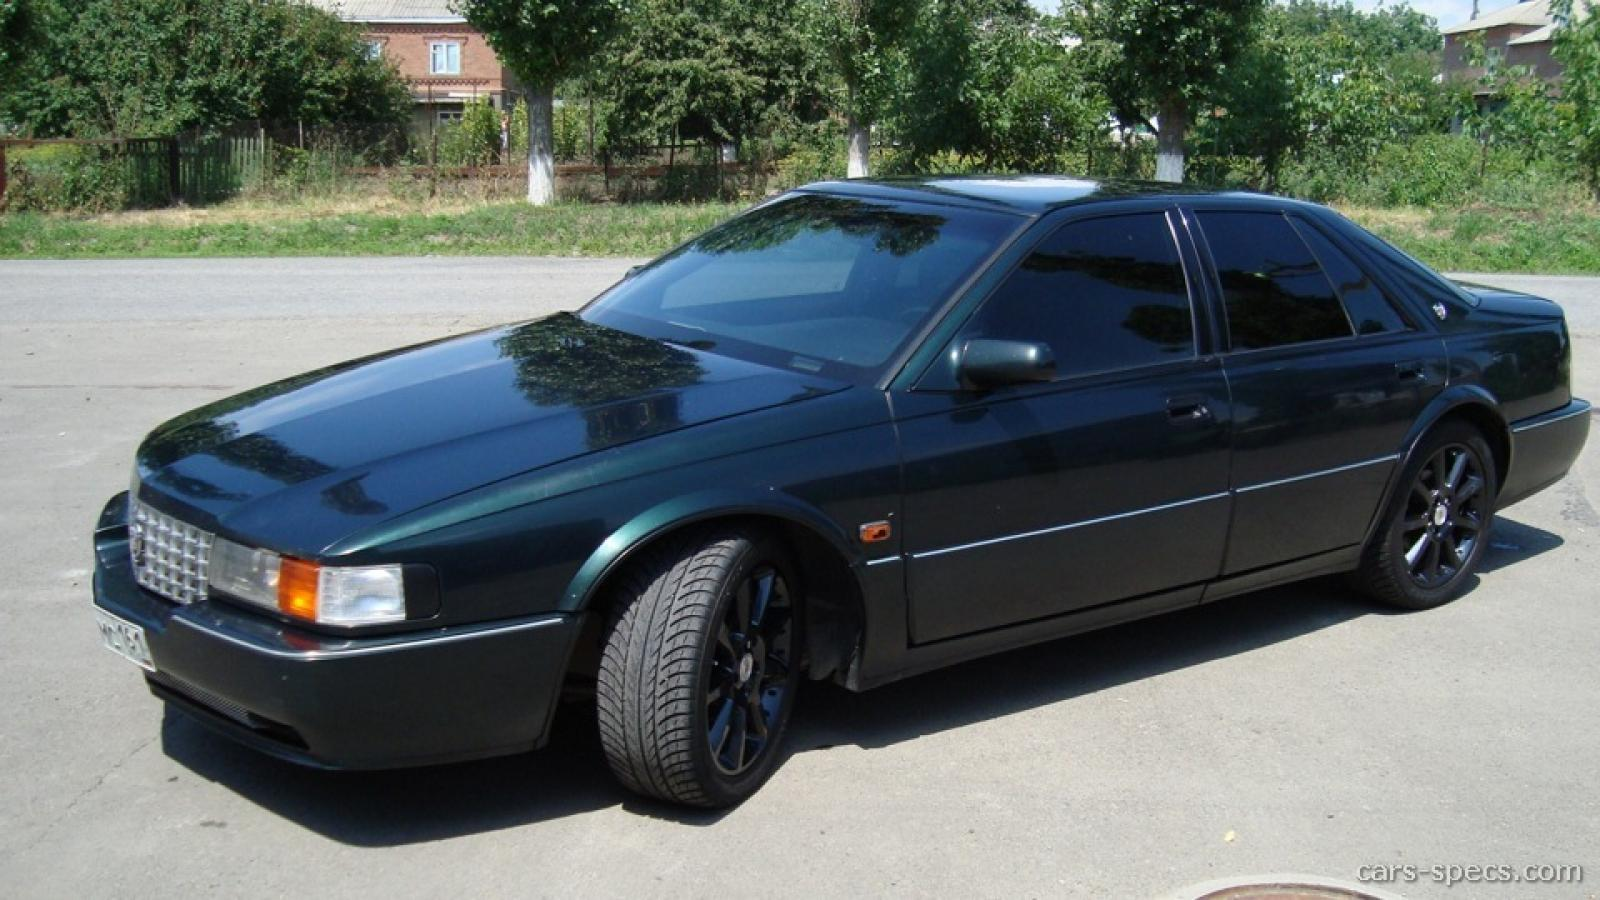 1993 cadillac seville information and photos zombiedrive. Black Bedroom Furniture Sets. Home Design Ideas